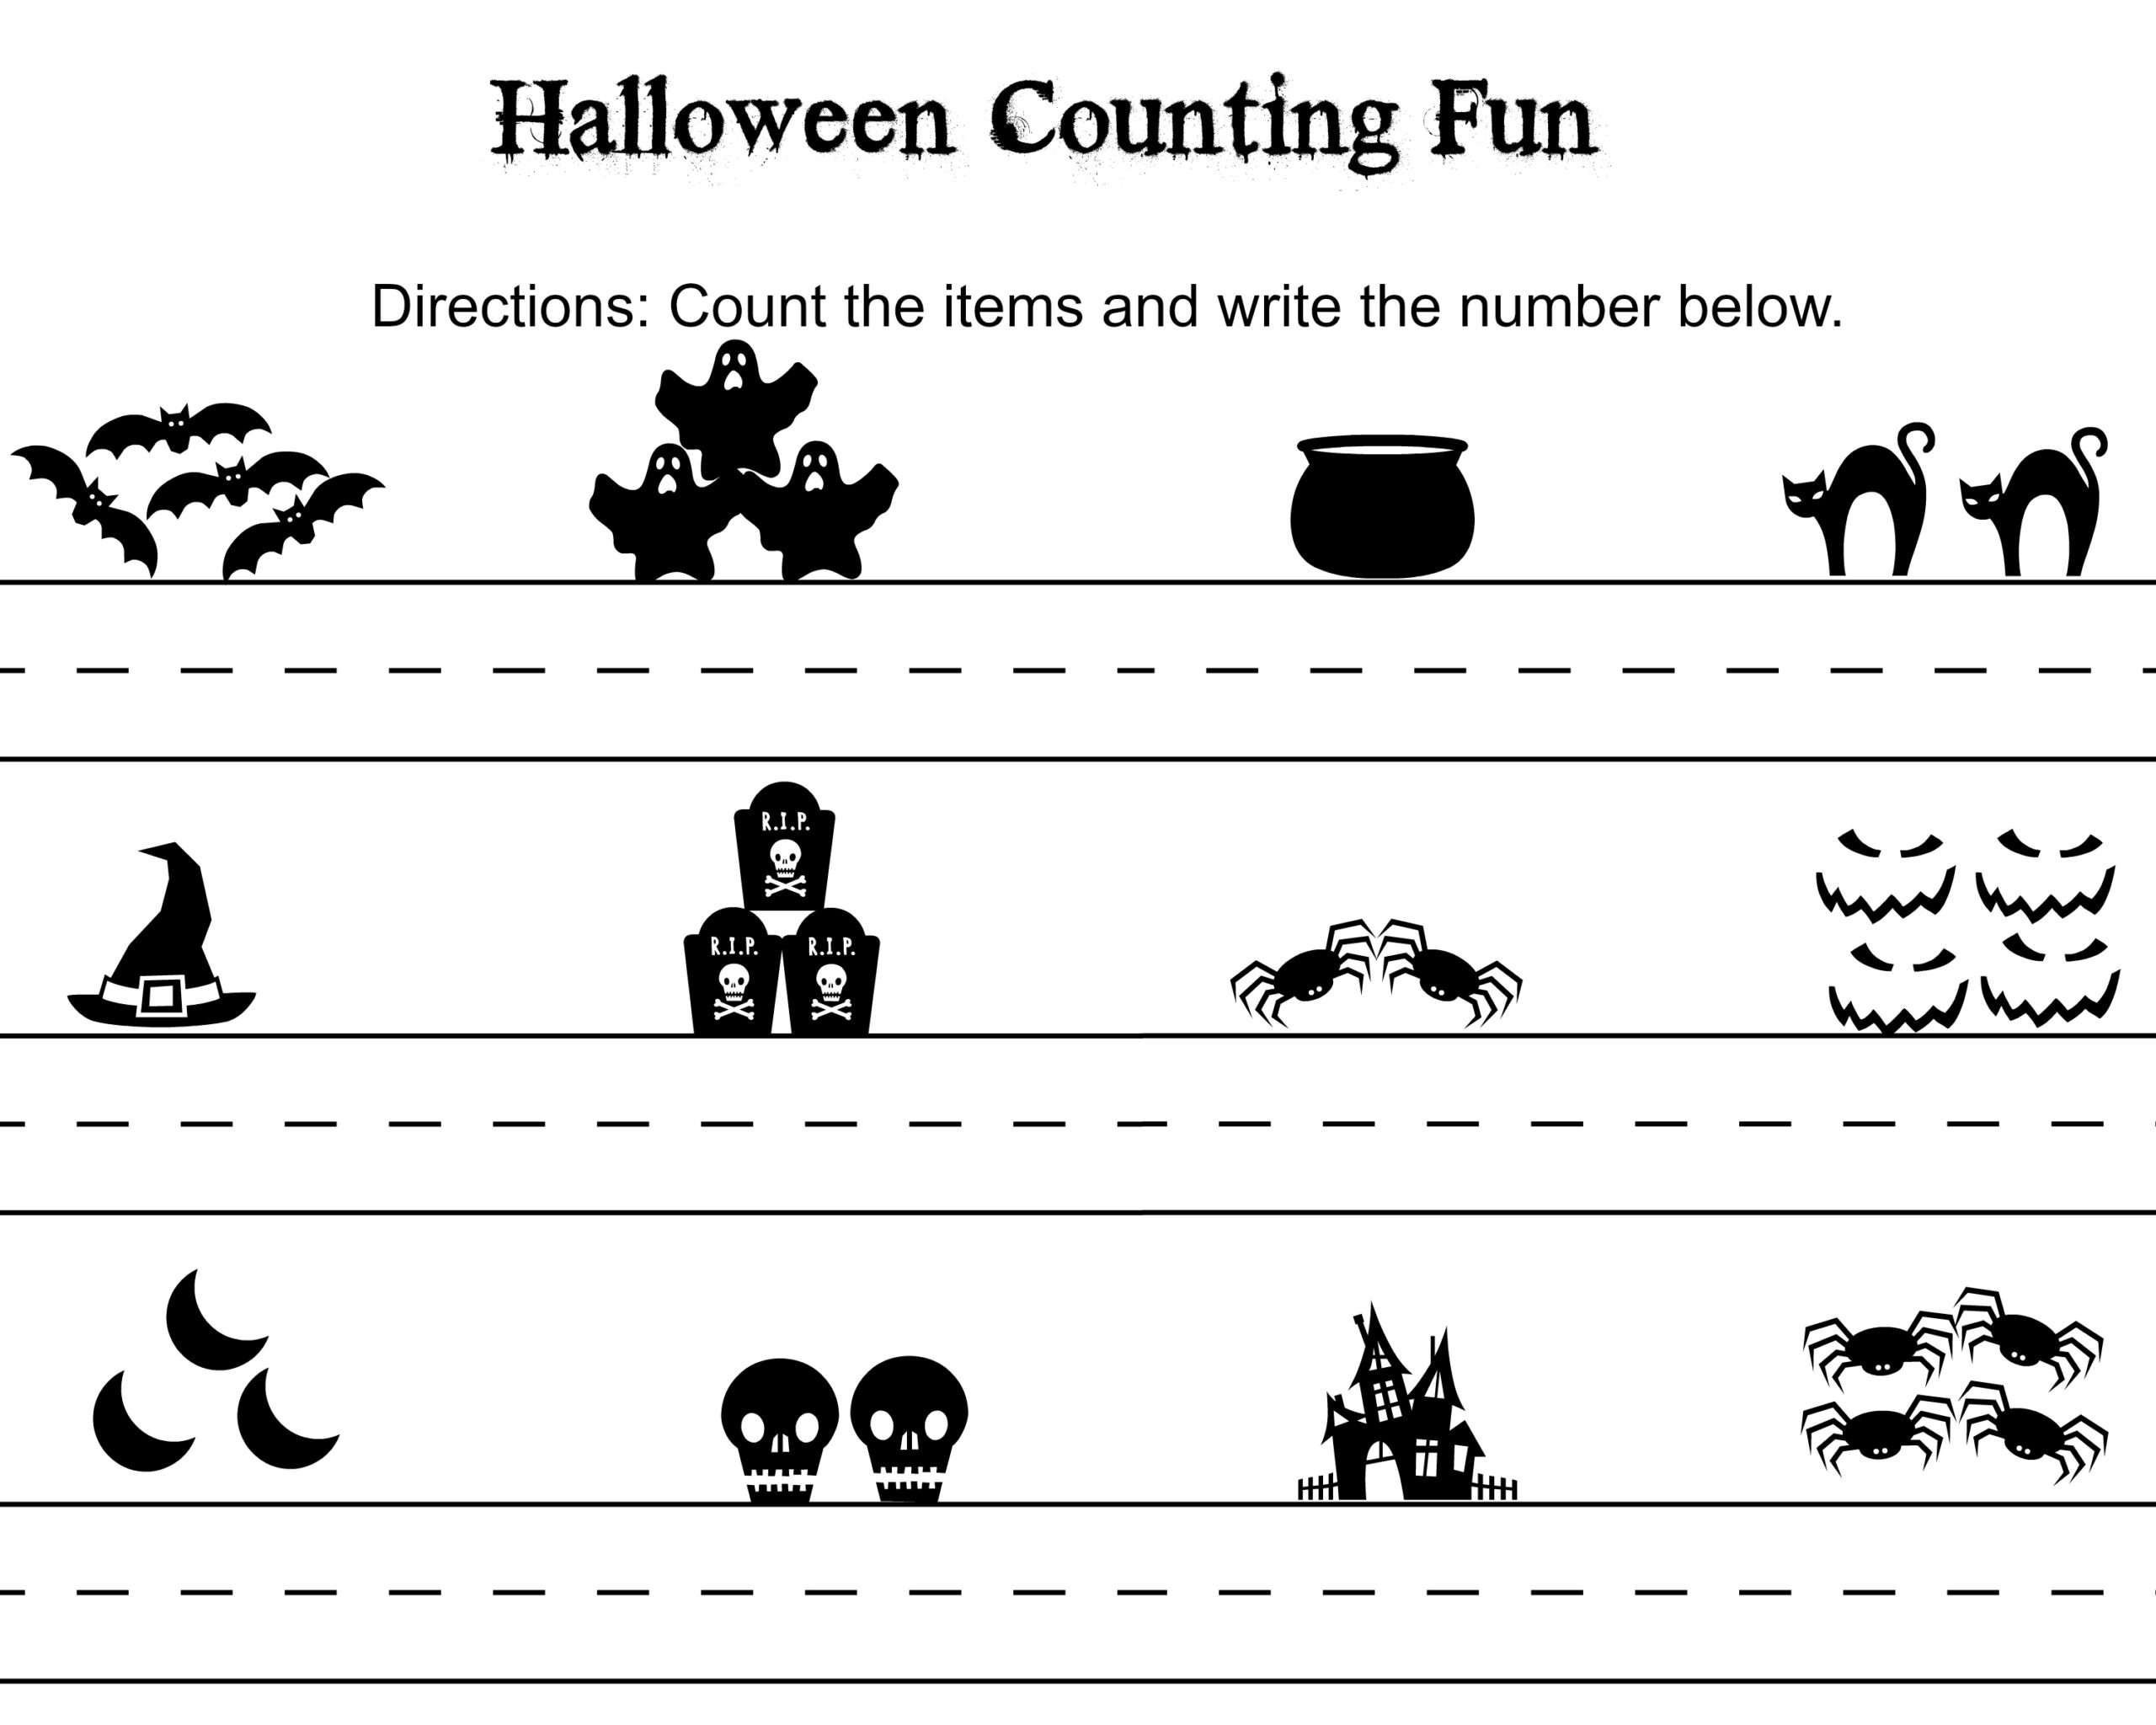 Free Kindergarten Halloween Worksheets Printable Free Halloween Word Search Counting Printables themed Math